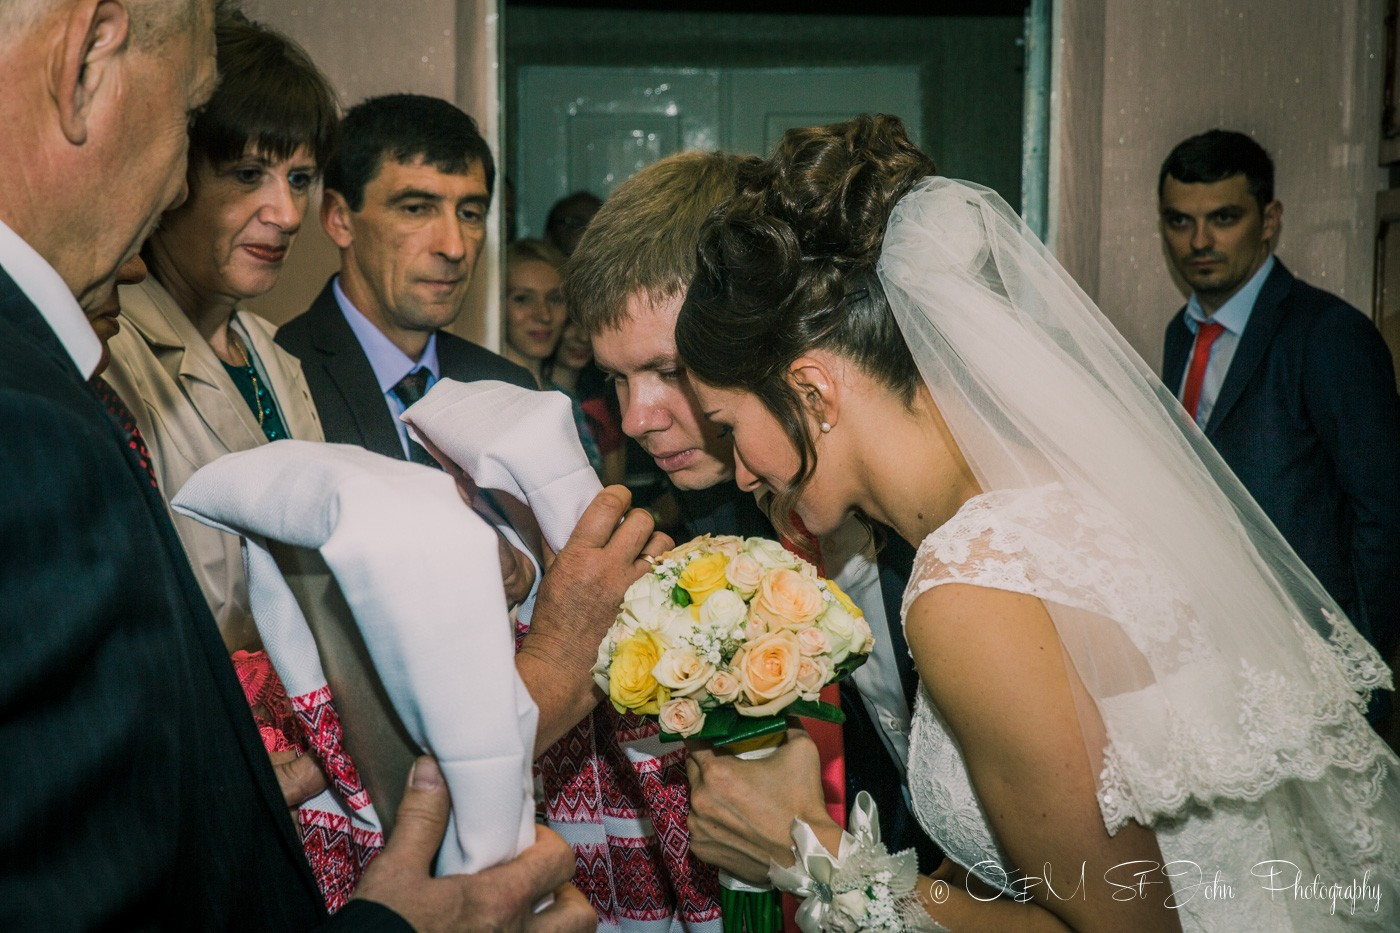 Why shout bitterly at a wedding 14